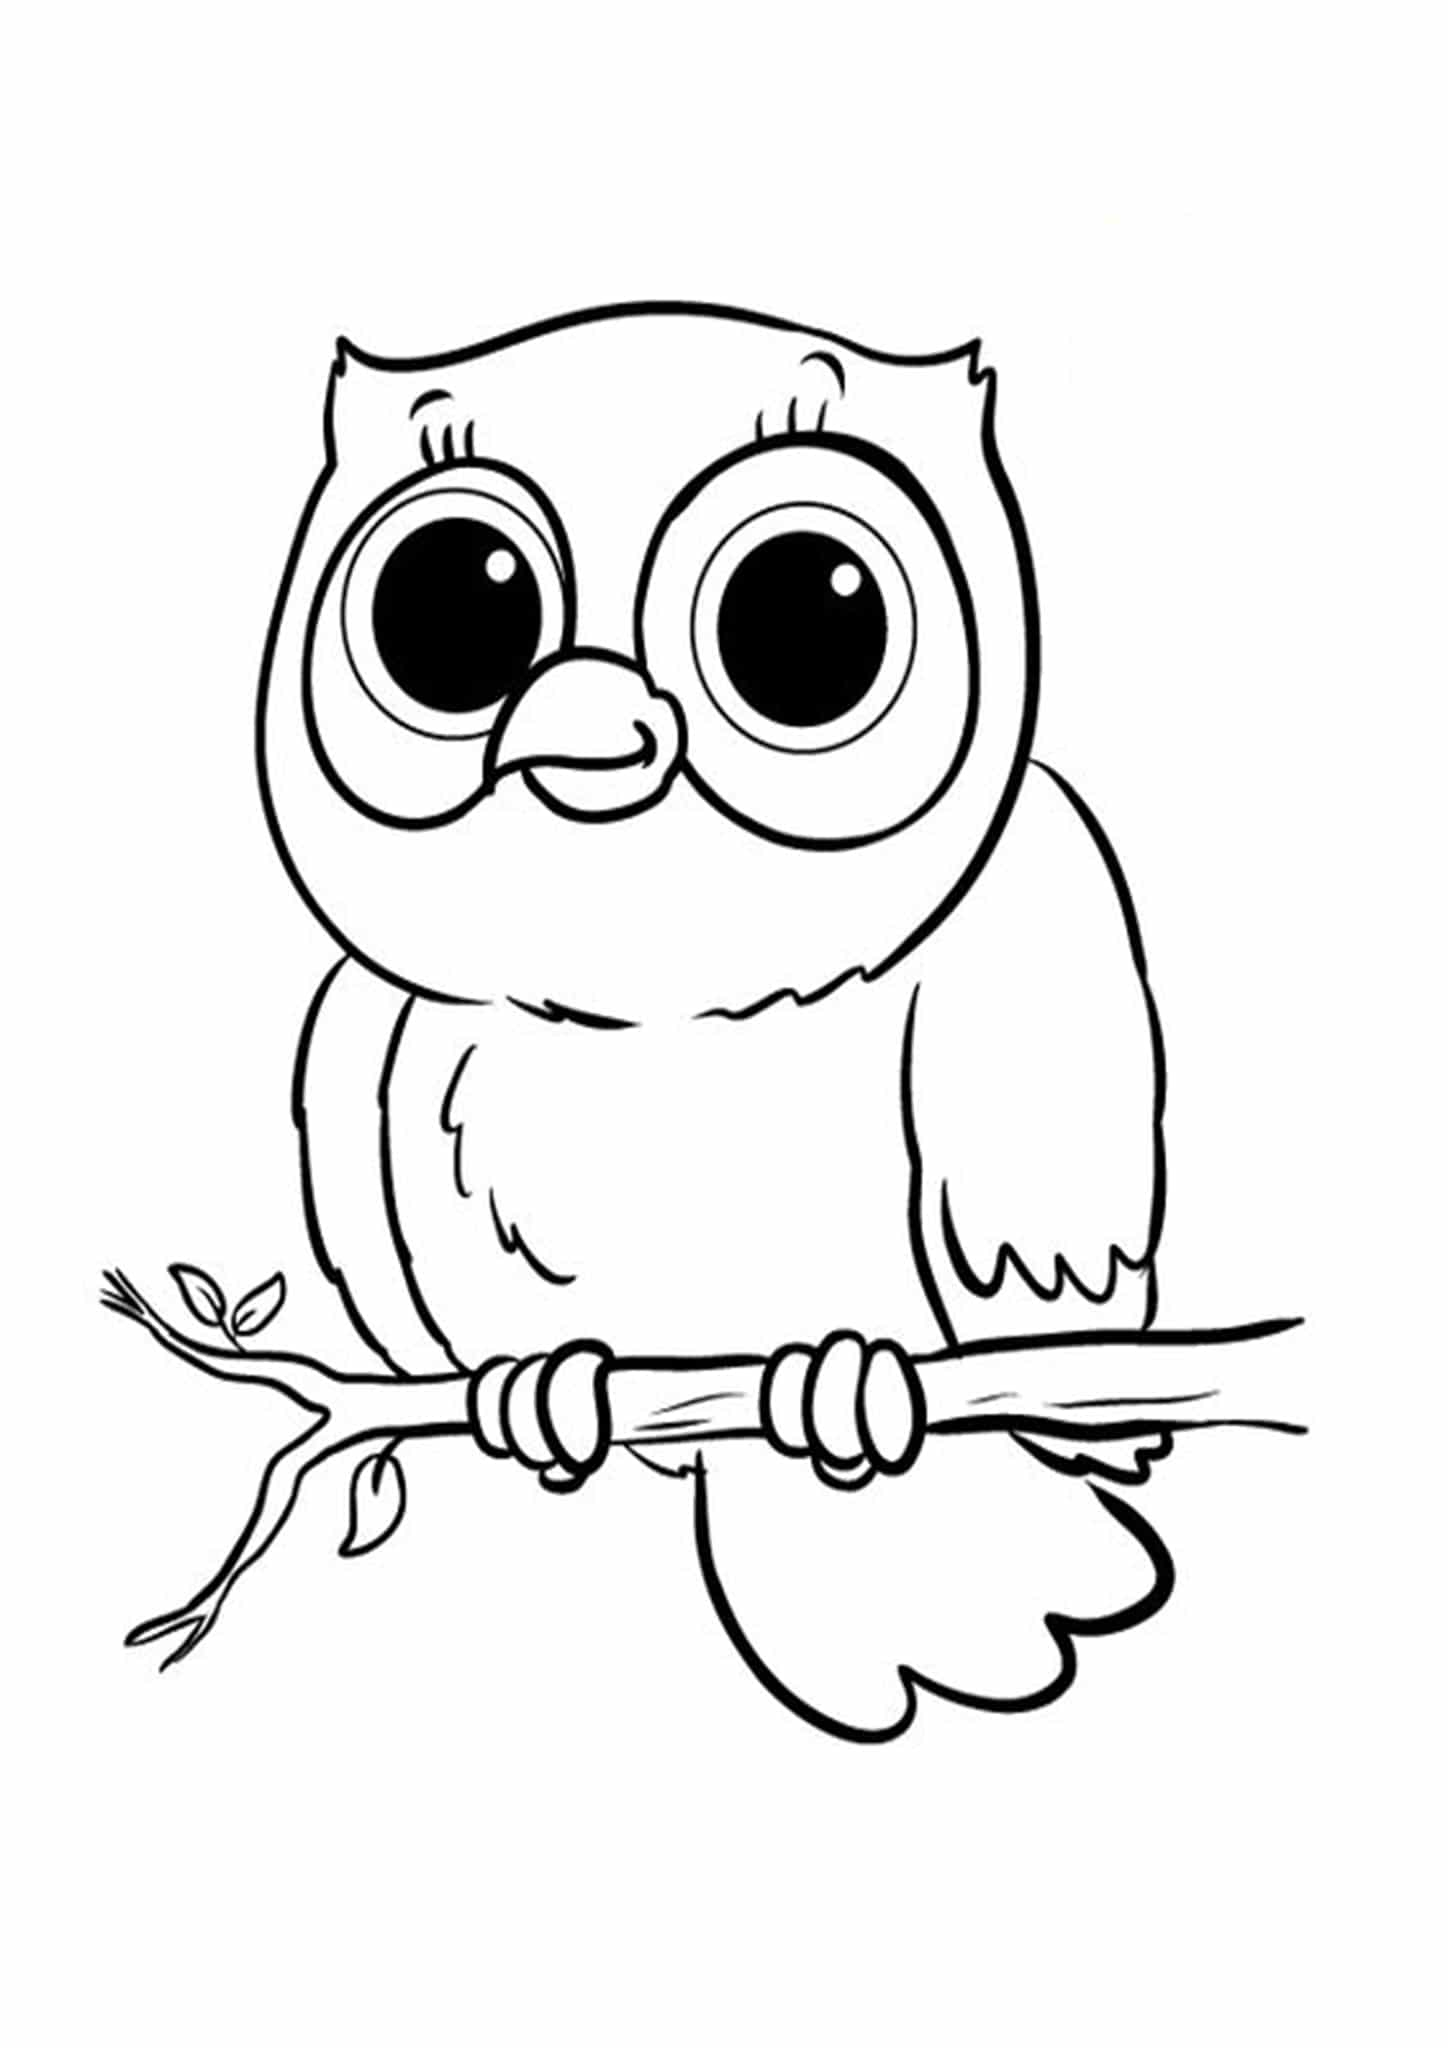 owl colouring sheets free easy to print owl coloring pages tulamama sheets colouring owl